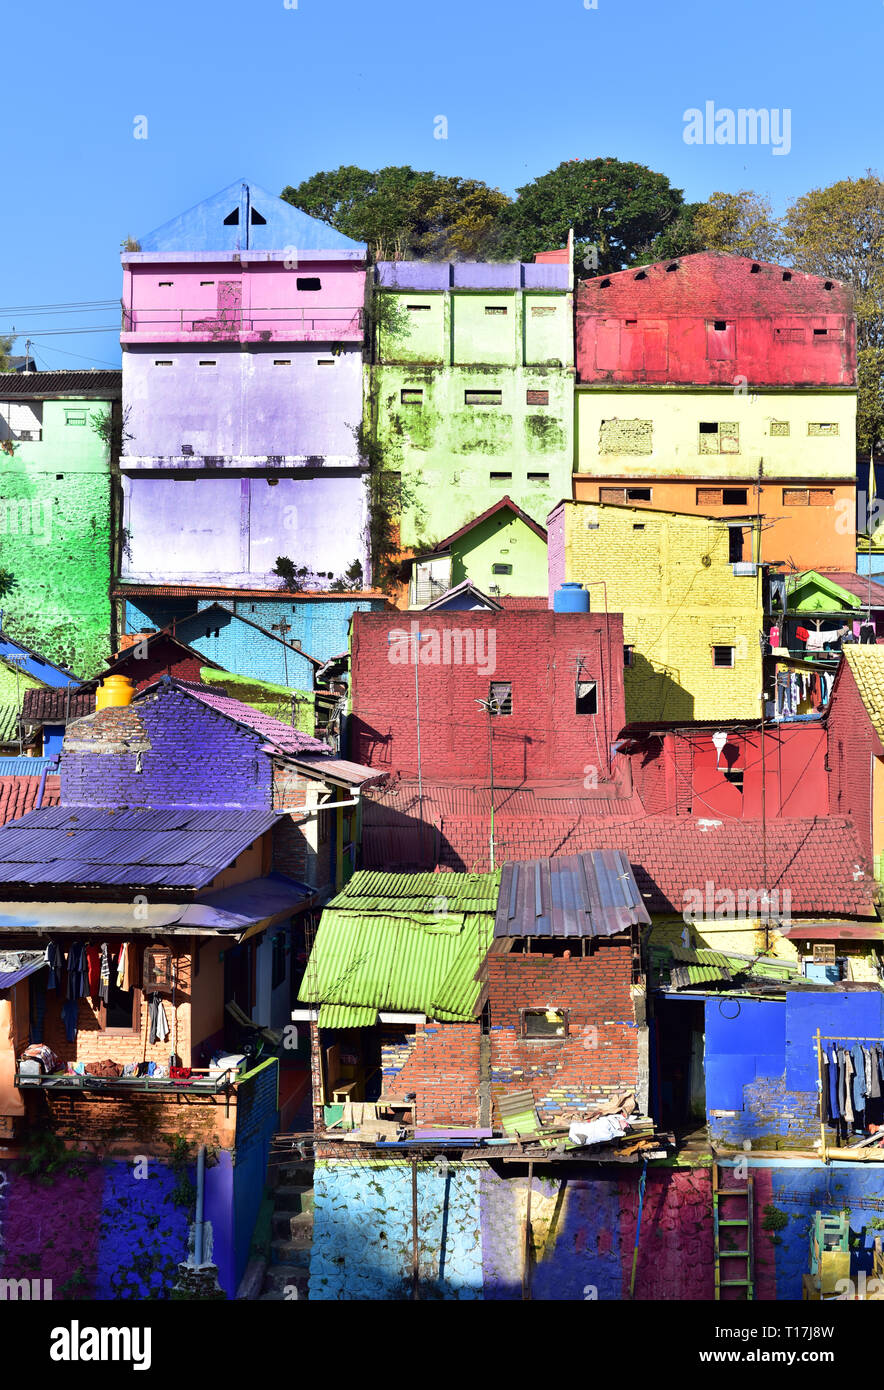 Malang S Colorful Suburb In Malang City Java Island Indonesia Stock Photo Alamy